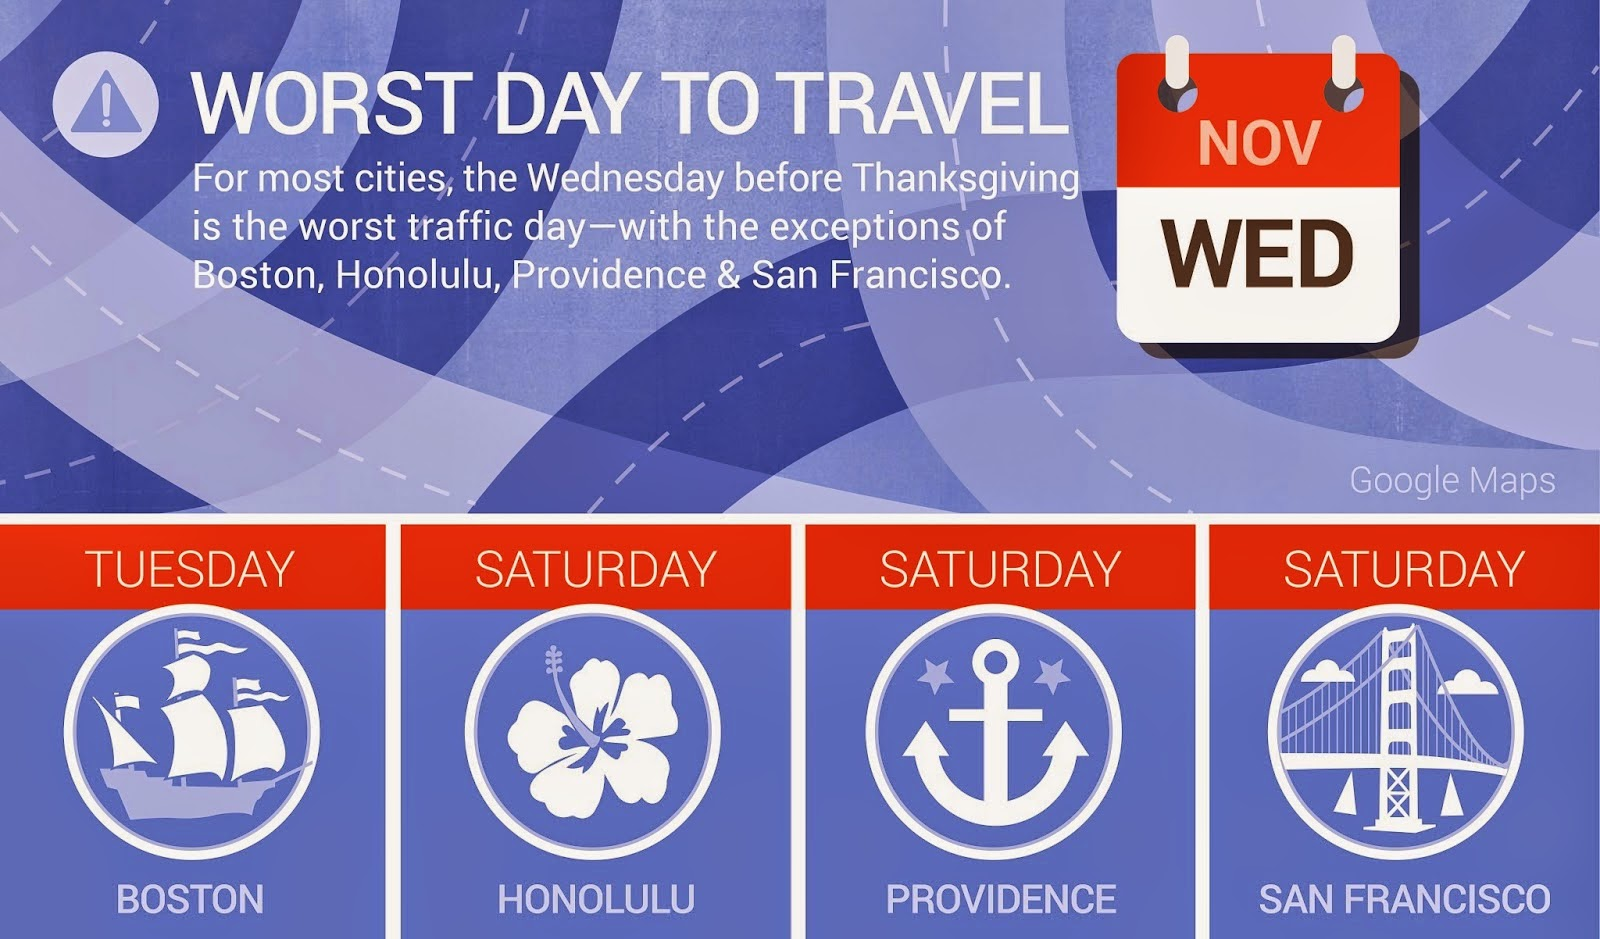 Thanksgiving Travel Tips From Google